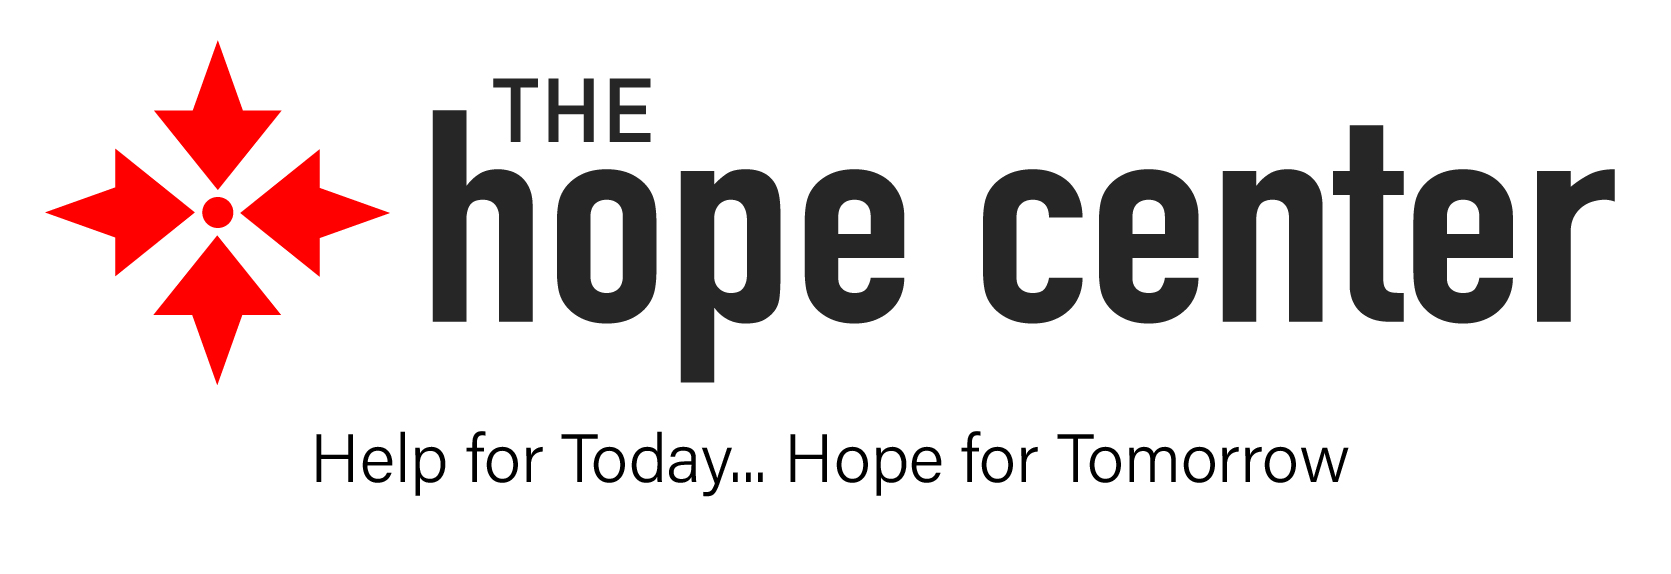 Hope Center at Hagerstown Rescue Mission